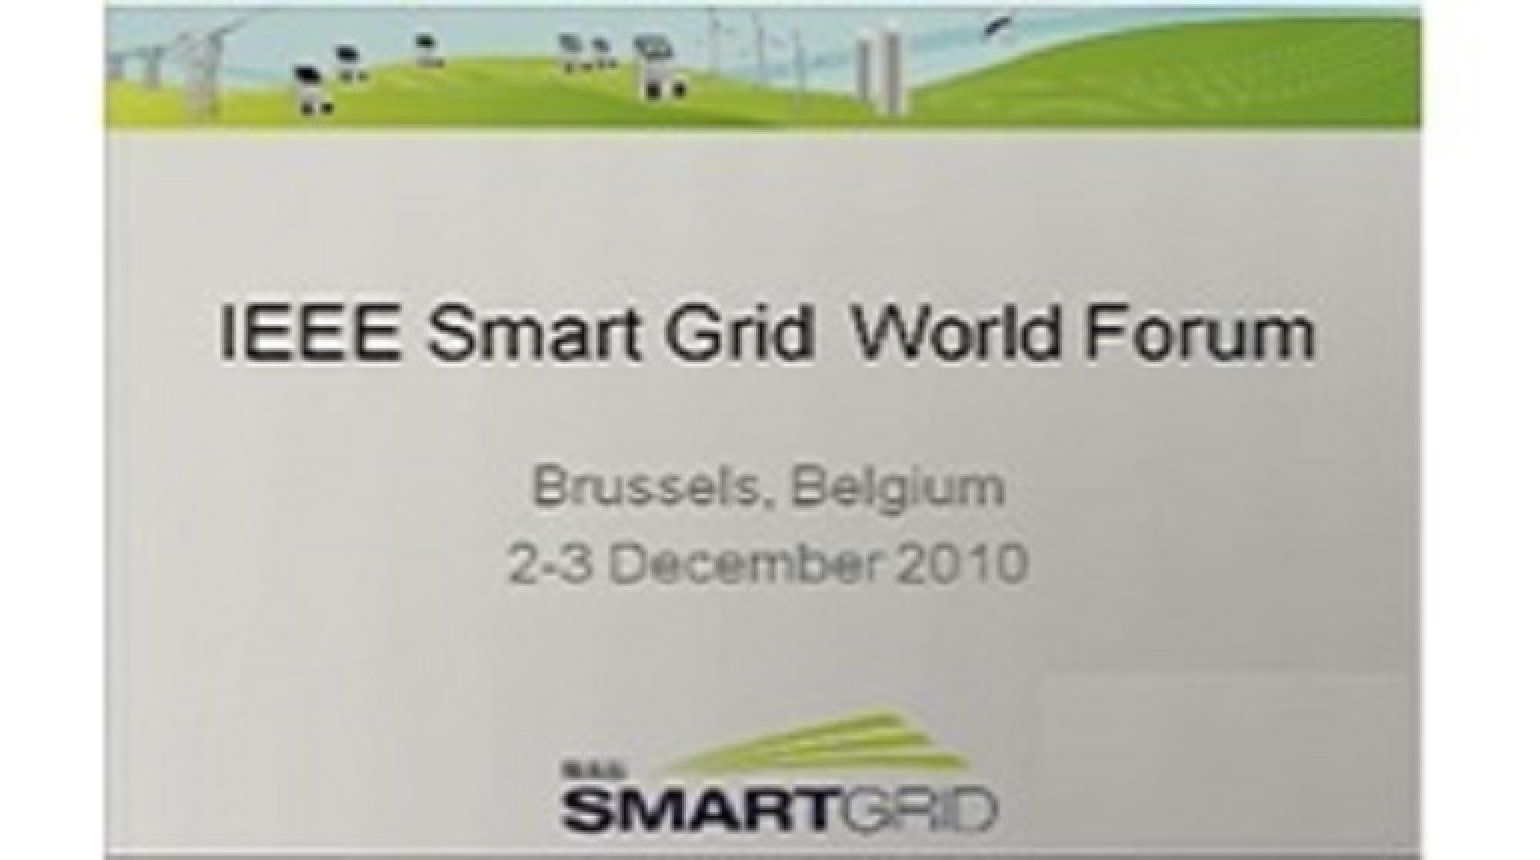 IEEE Smart Grid World Forum - Session 5 Panel Discussion